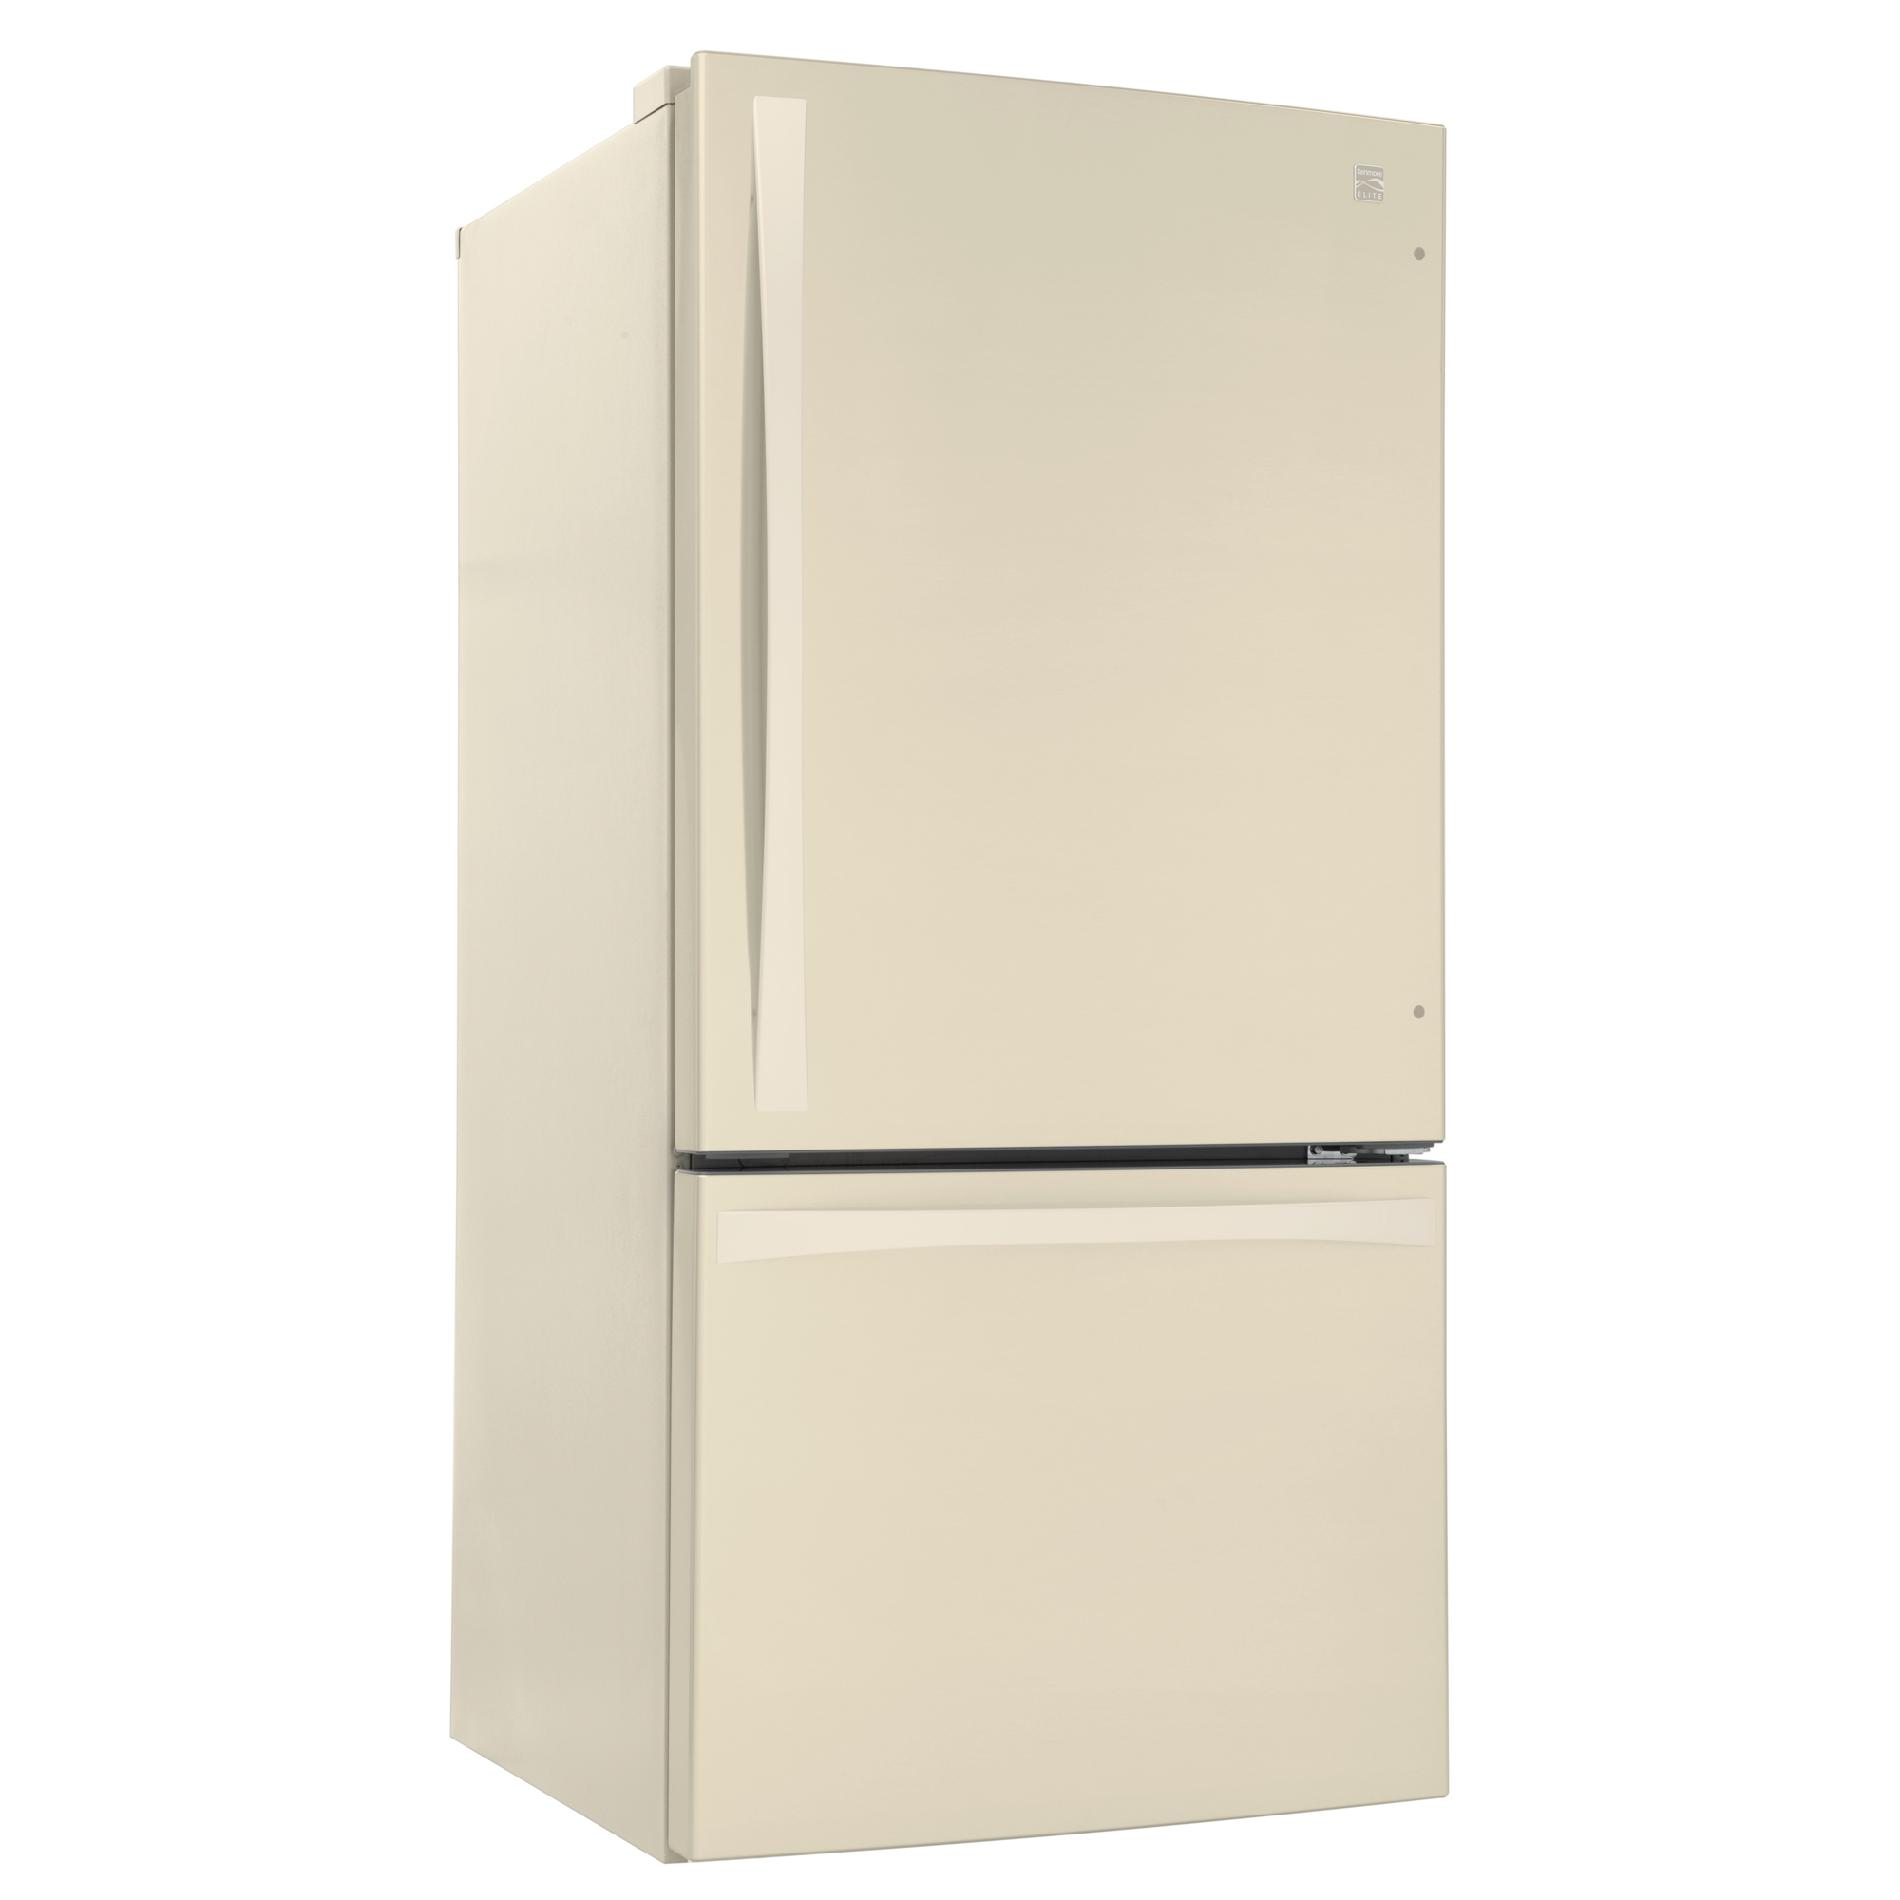 Kenmore Elite 24 cu. ft. Bottom-Freezer Refrigerator – Bisque